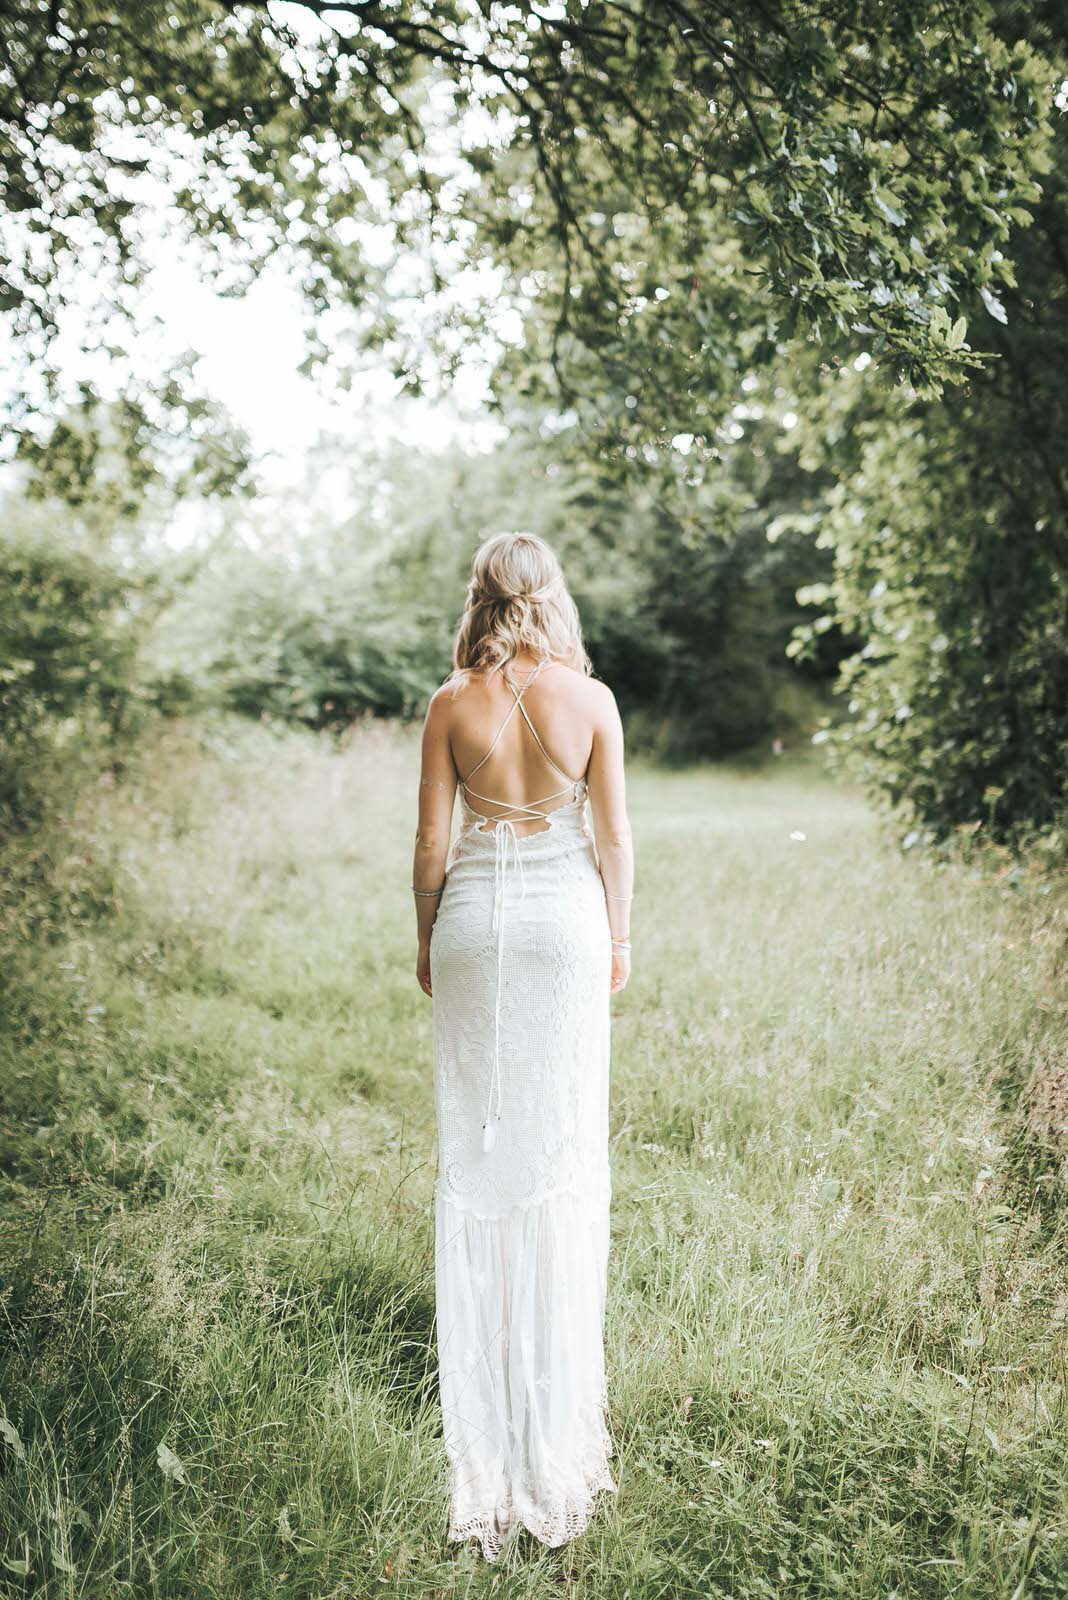 Image of an Essex festival wedding photograph taken by fun Essex wedding photographer at Browning Bros Chalkney Water Meadows in Colchester.